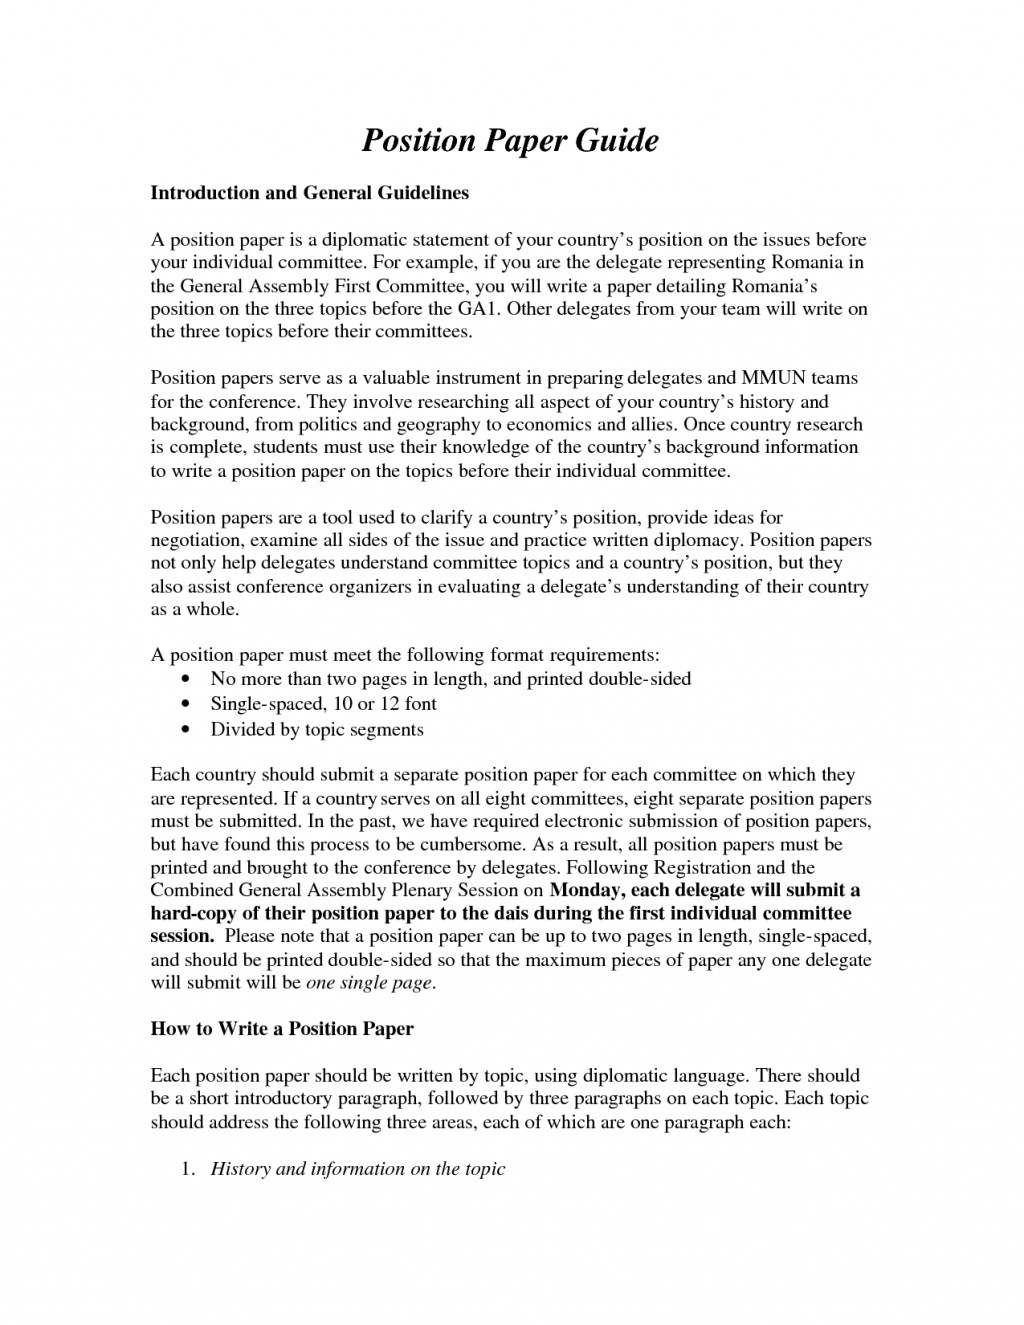 003 Research Paper Proposal Example 501383 Examples Of Topic For Impressive Papers Large